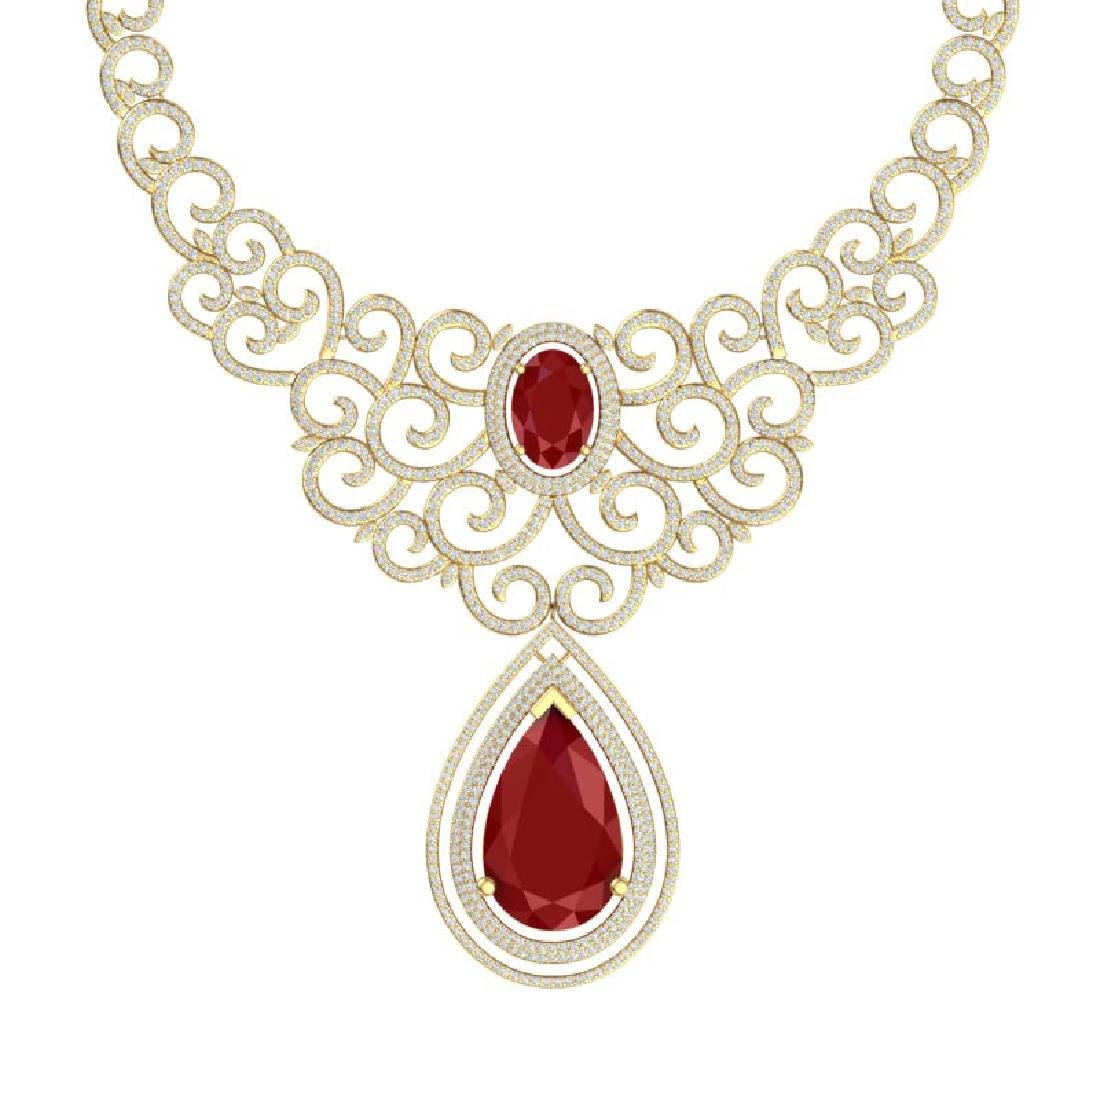 87.52 CTW Royalty Ruby & VS Diamond Necklace 18K Gold - 2